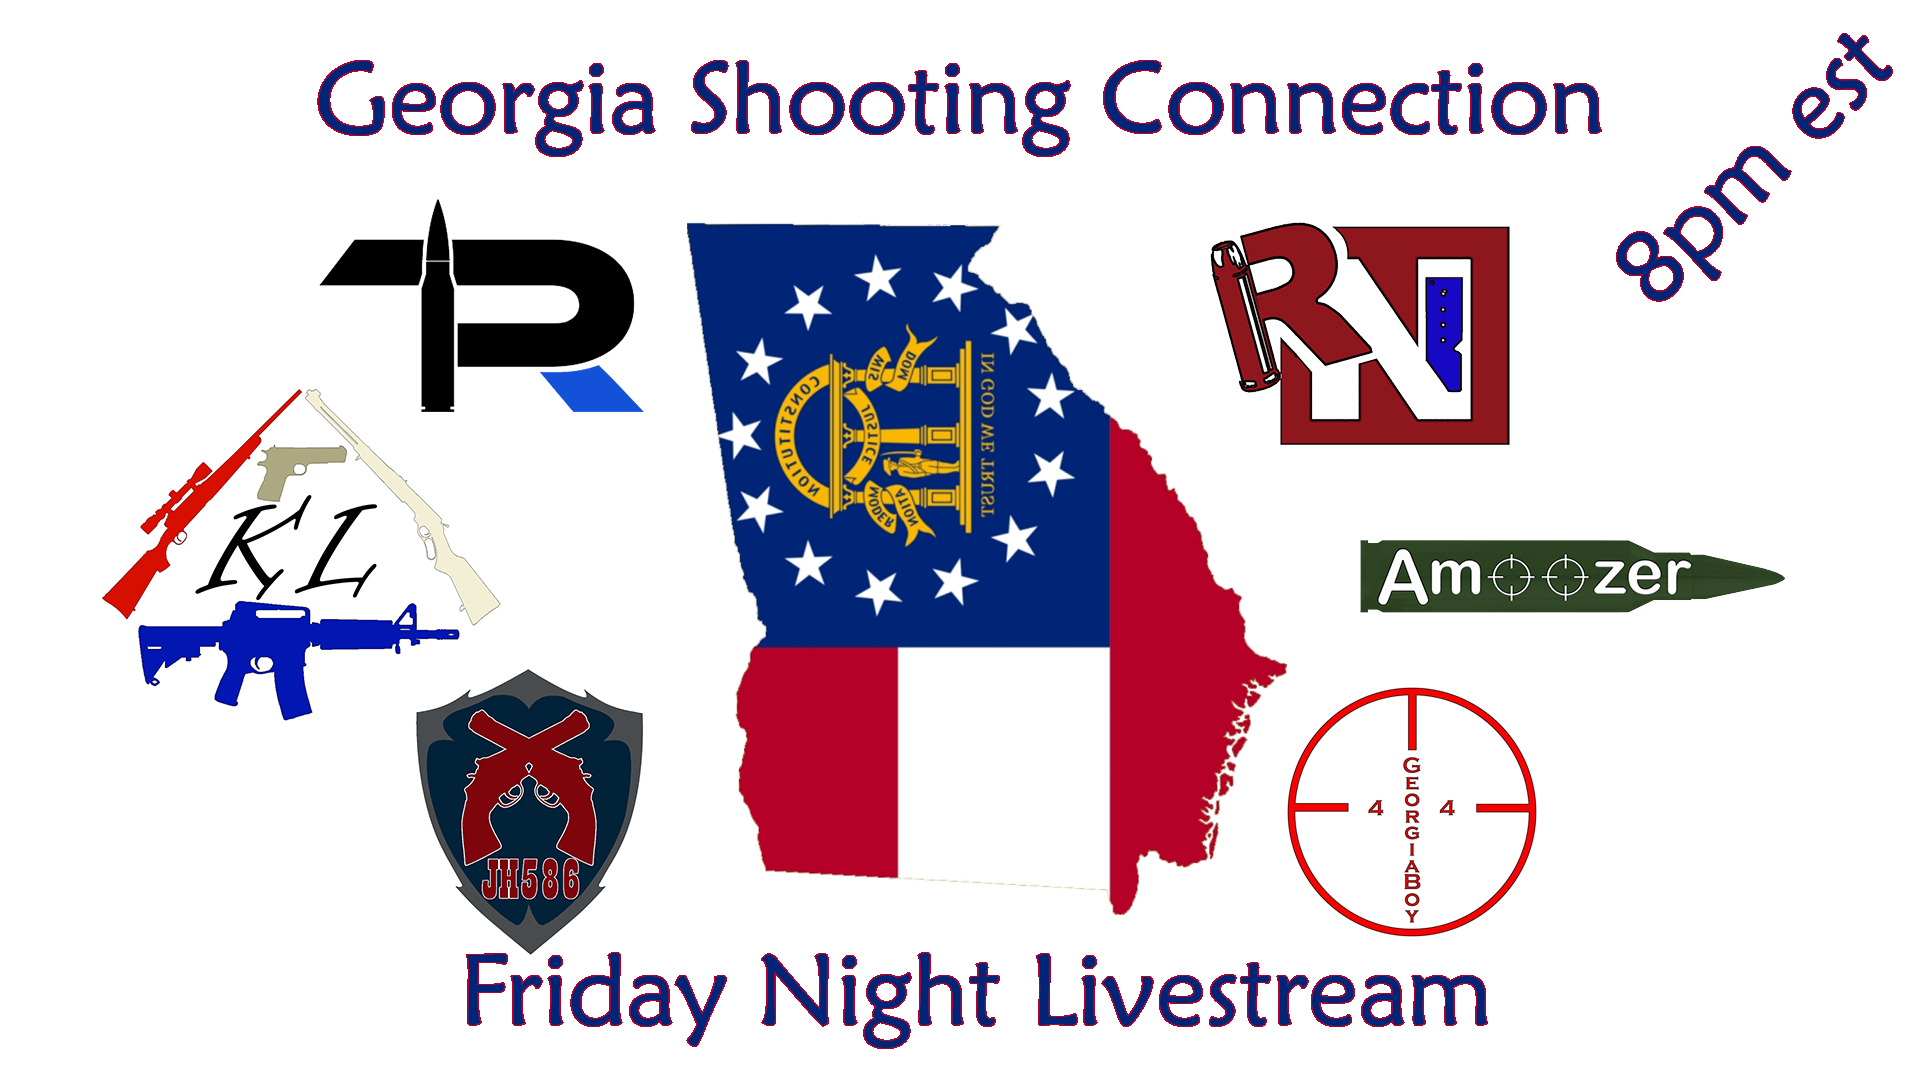 Georgia Shooting Connection Friday Live Stream 01.11 12